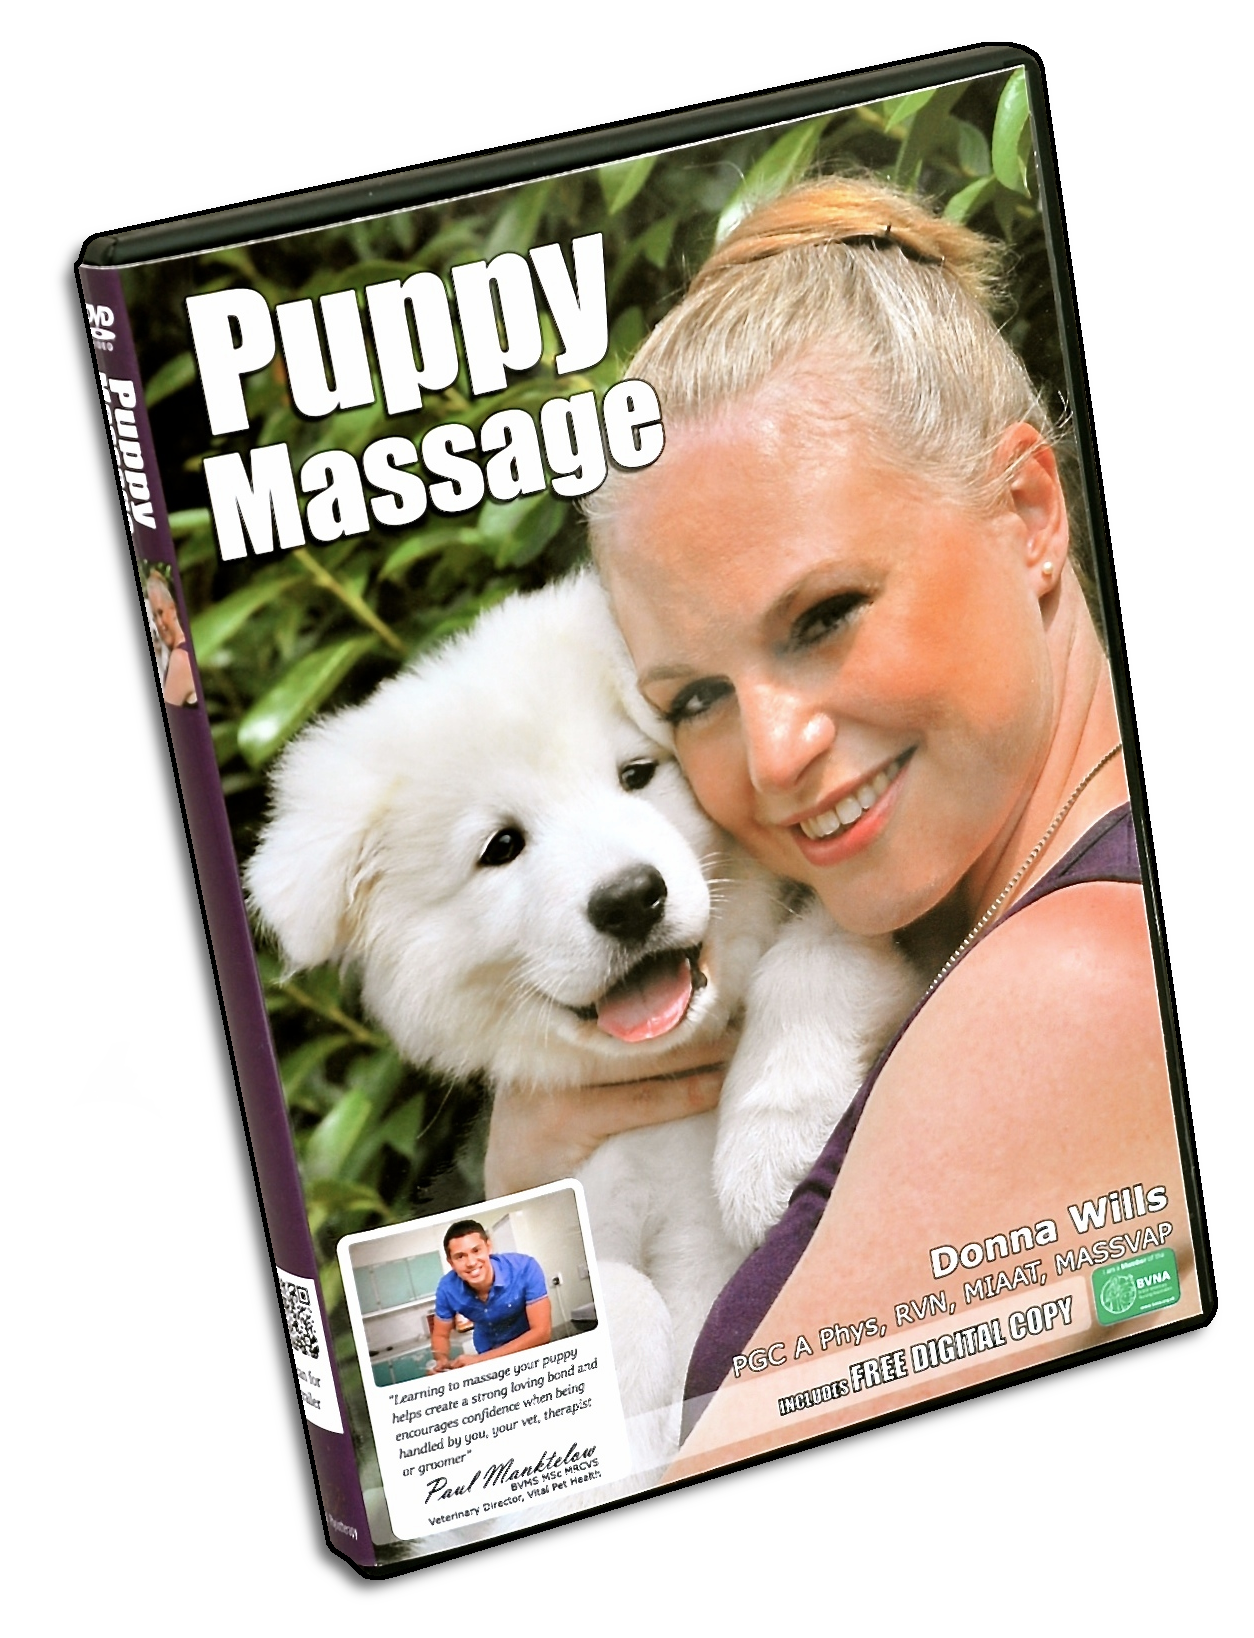 Puppy Massage DVD - Stockists